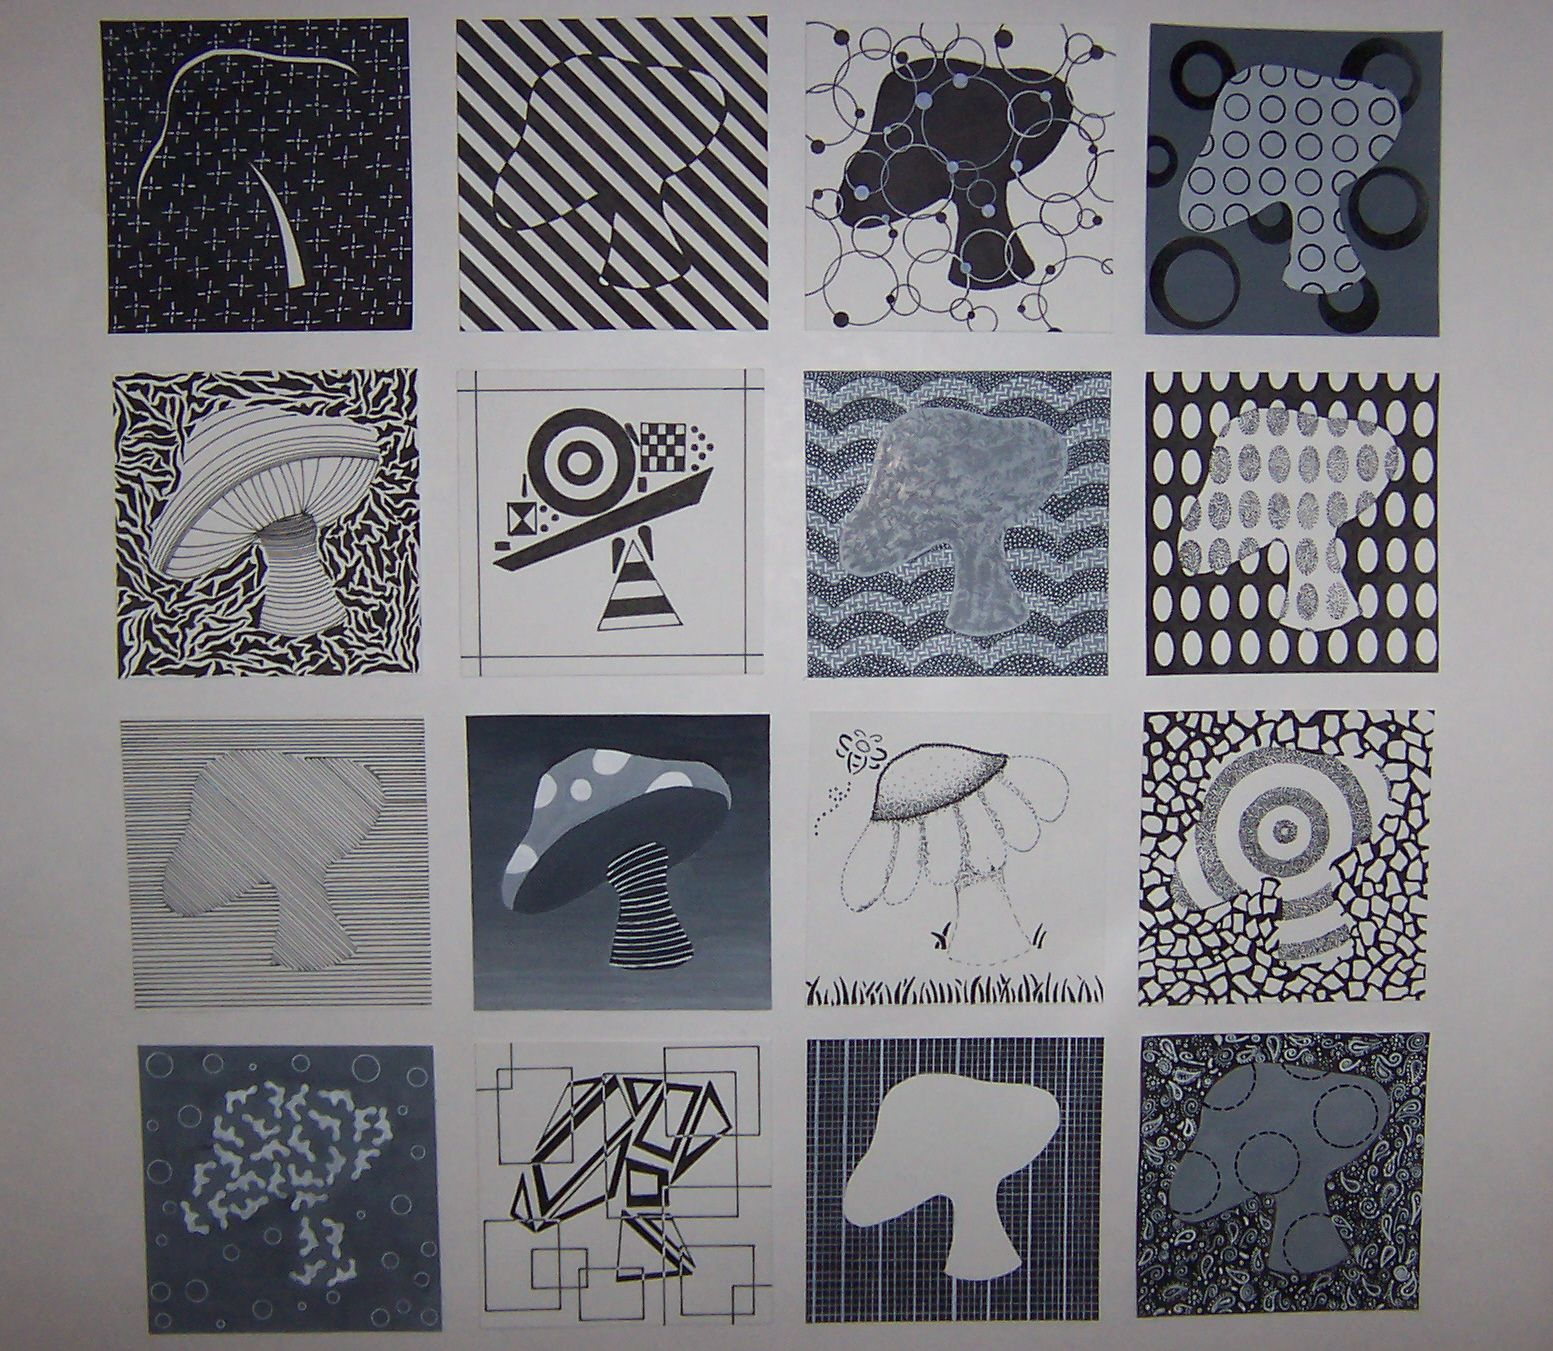 16 Squares Displaying All Of The Elements Amp Principles Of